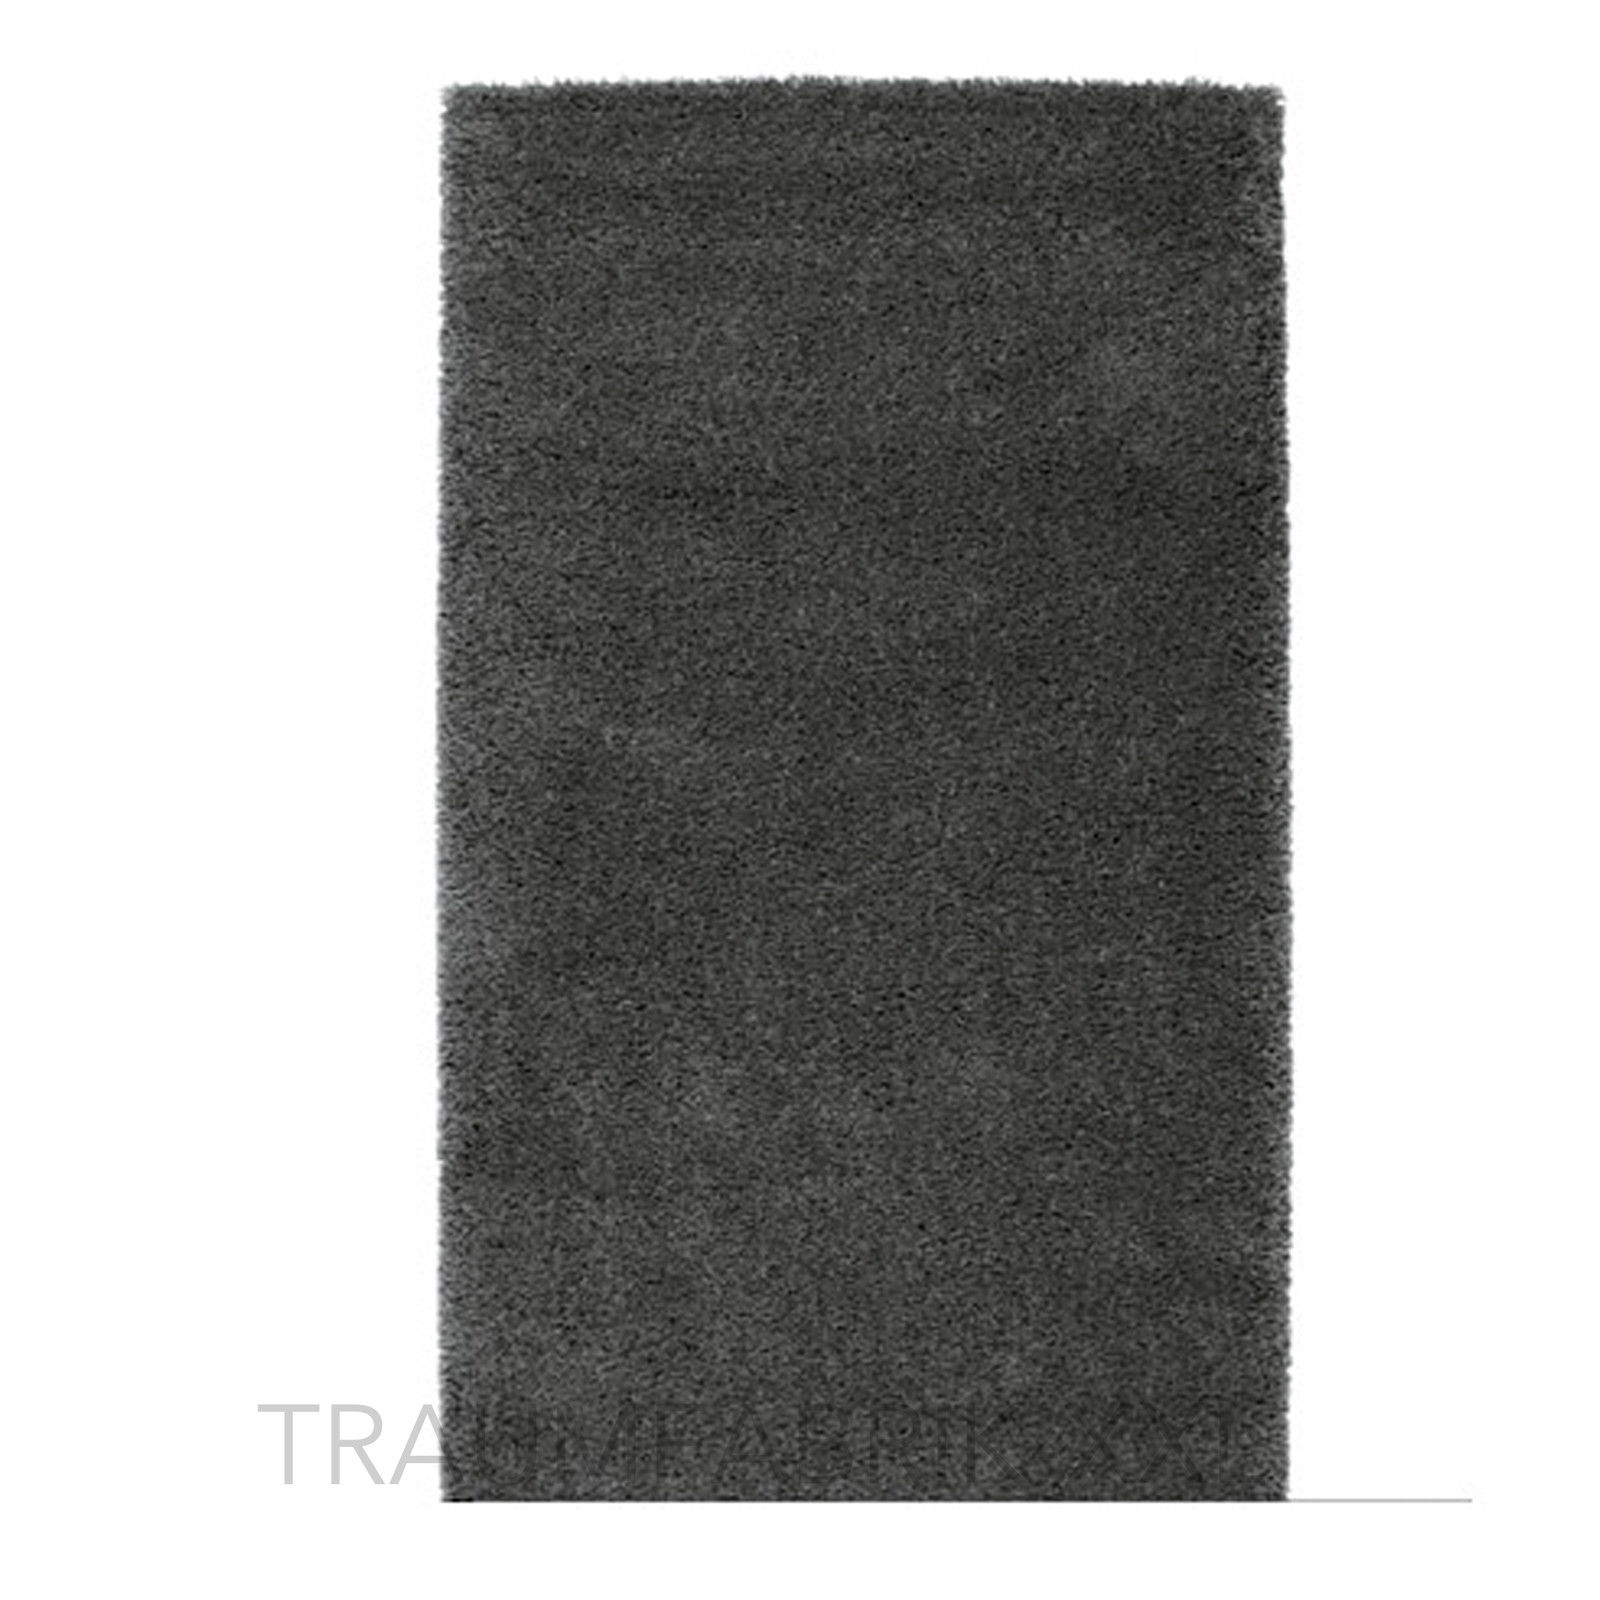 ikea adum teppich shaggy dkl grau langflor hochflor l ufer br cke 150 80 cm neu traumfabrik xxl. Black Bedroom Furniture Sets. Home Design Ideas